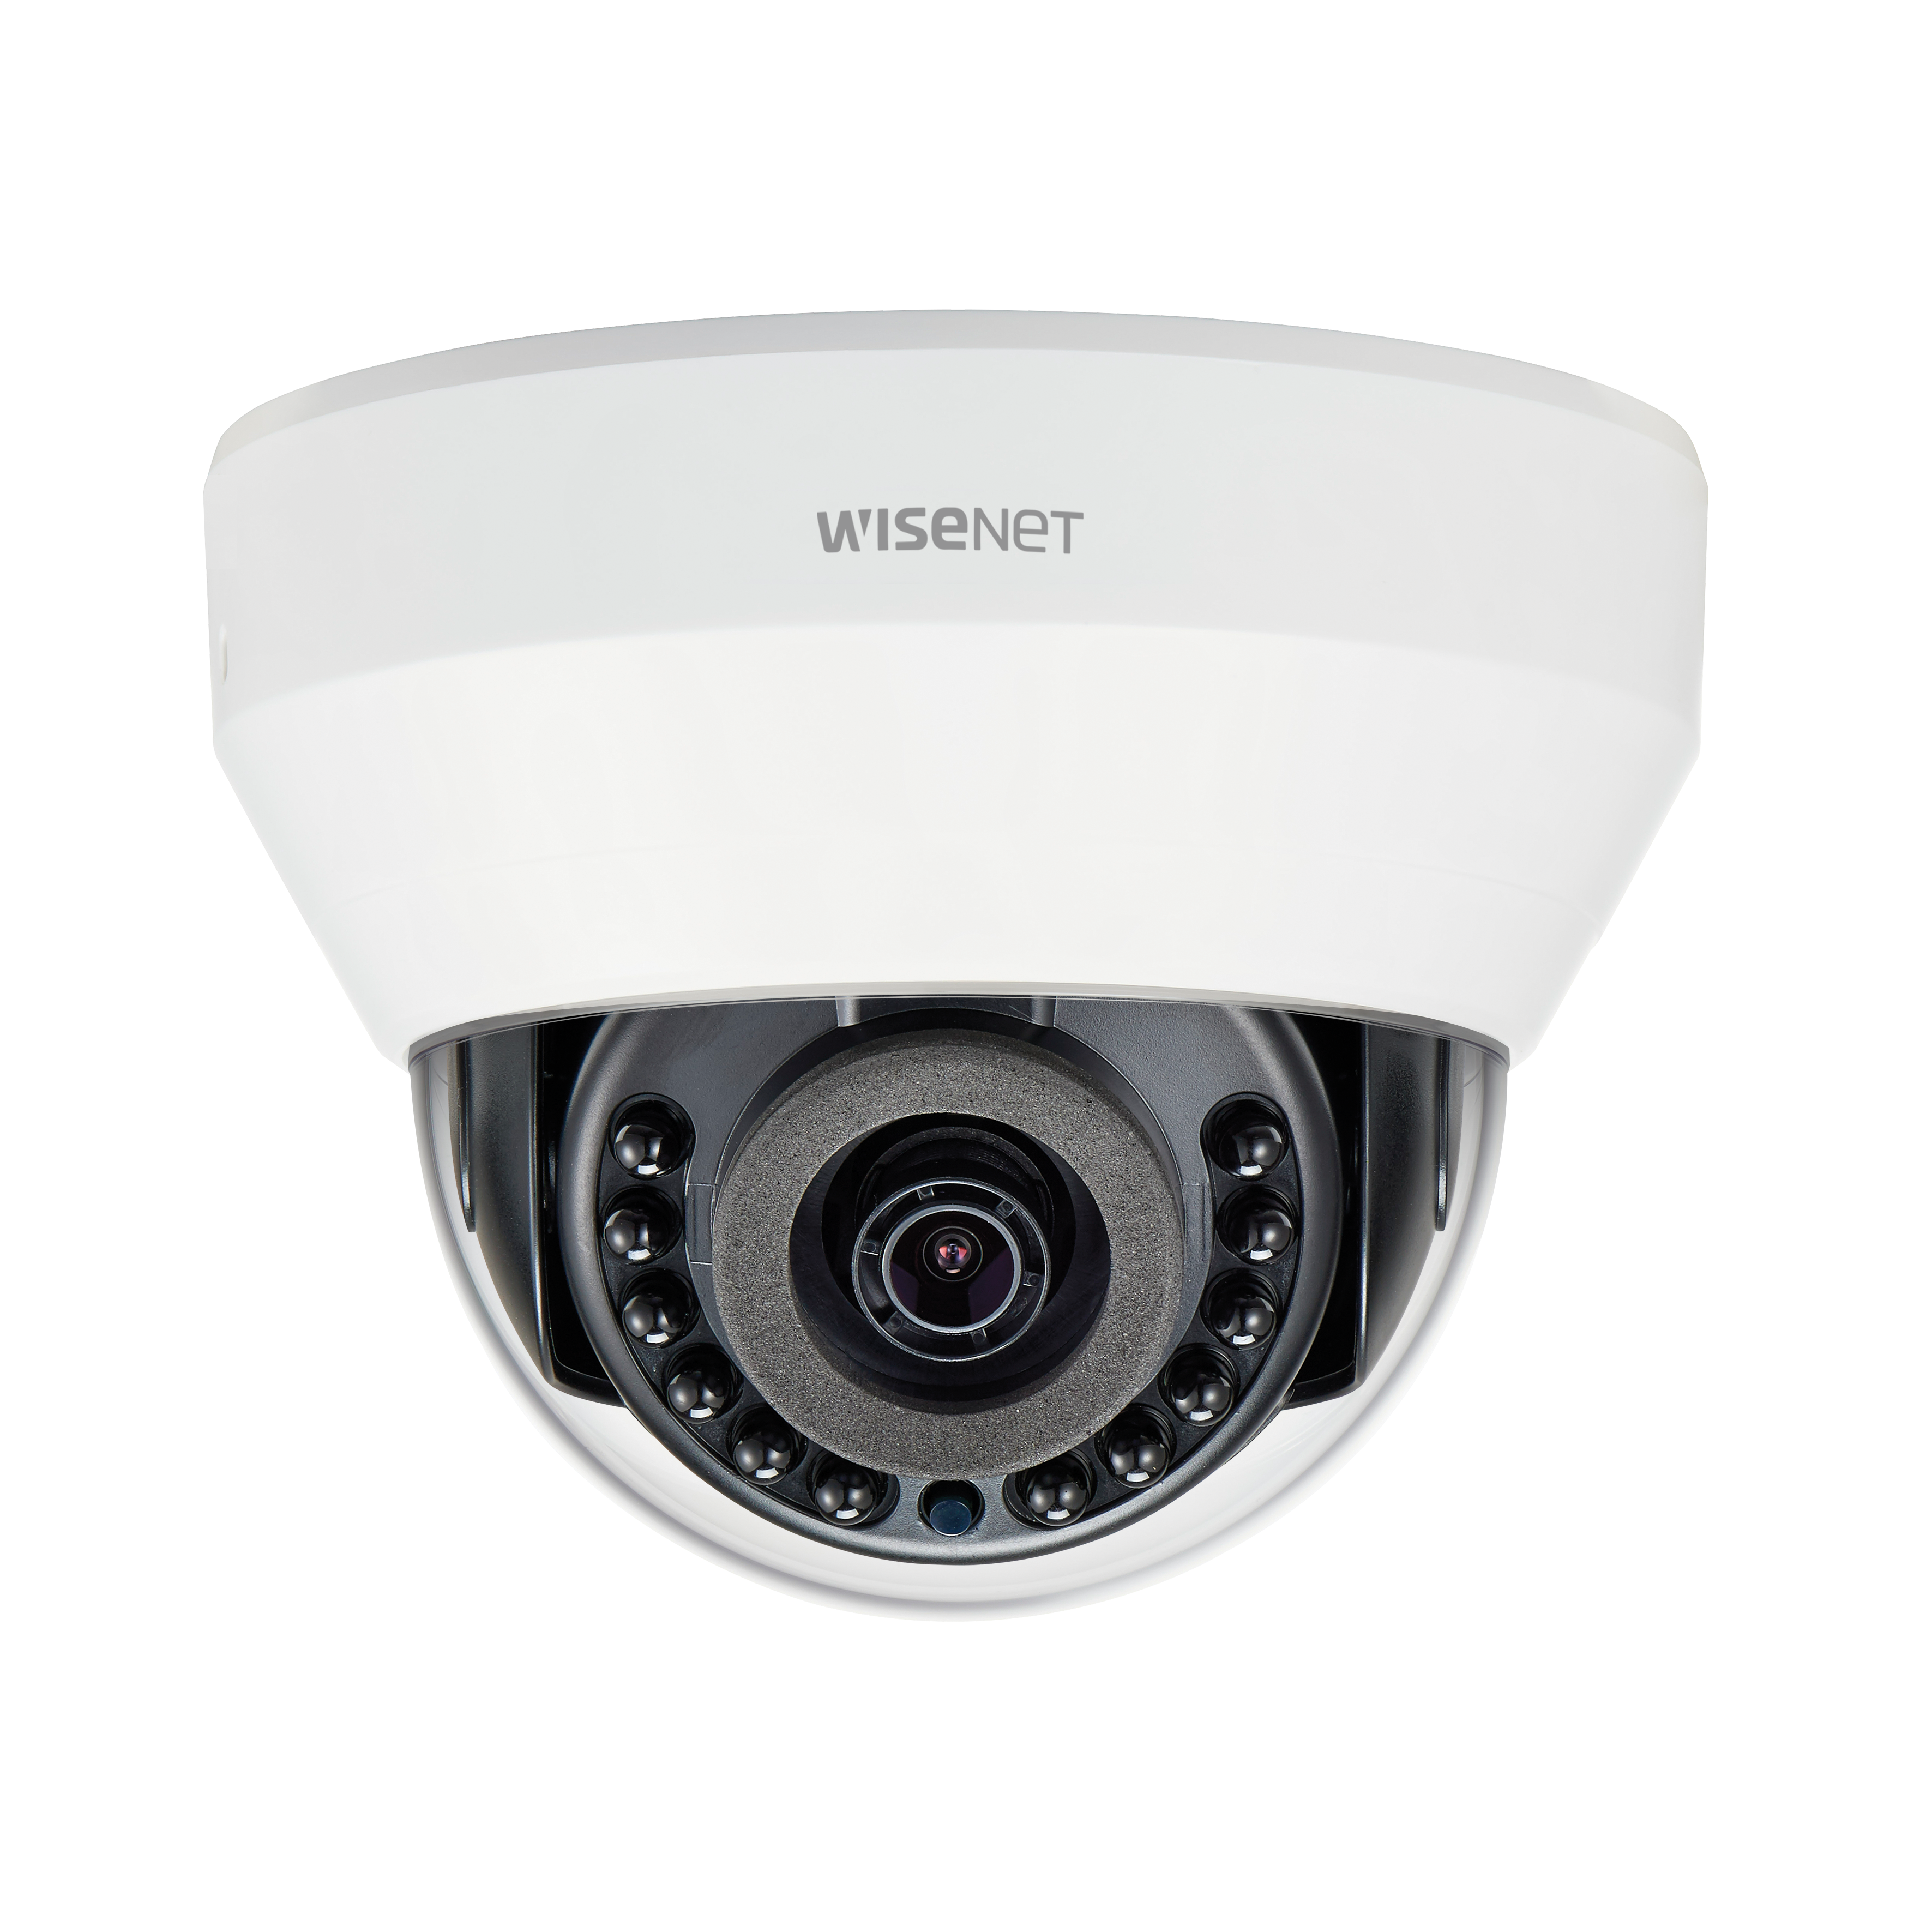 https://www.hanwha-security.eu/wp-content/uploads/2018/02/LND-6010R_20R_30R_F_En.png